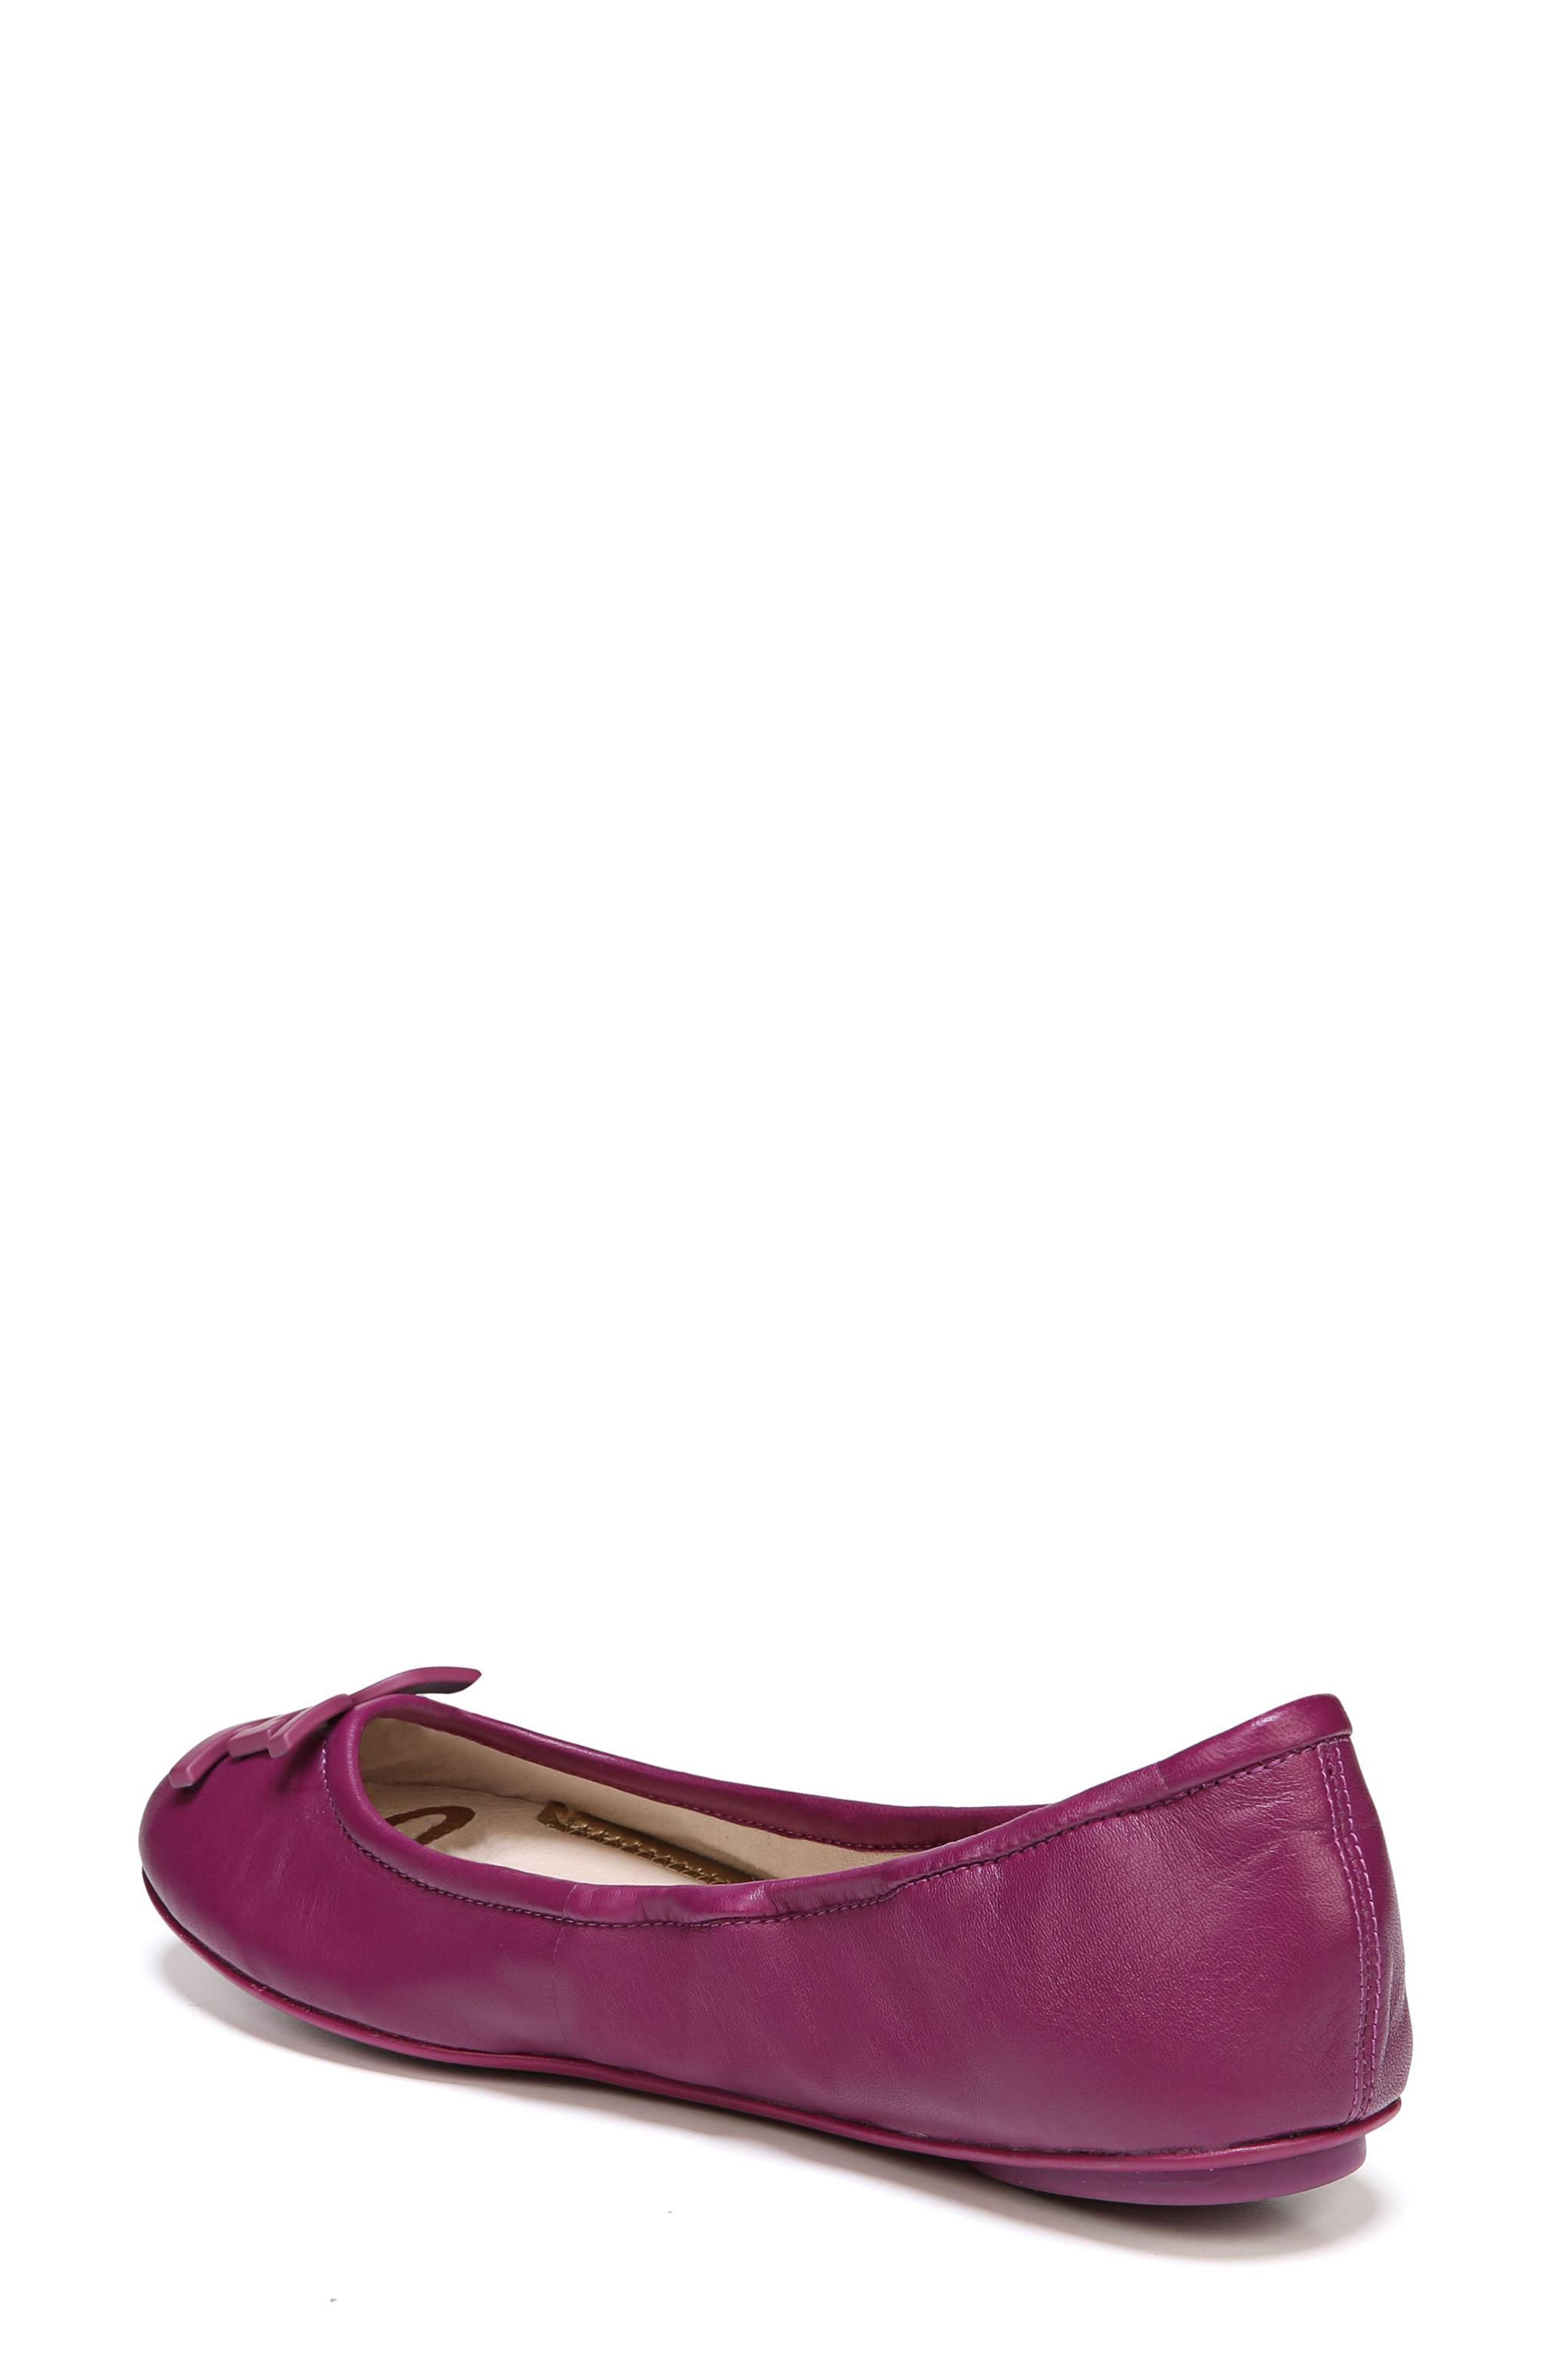 Florence Ballet Flat,                             Alternate thumbnail 2, color,                             Mulberry Pink Leather